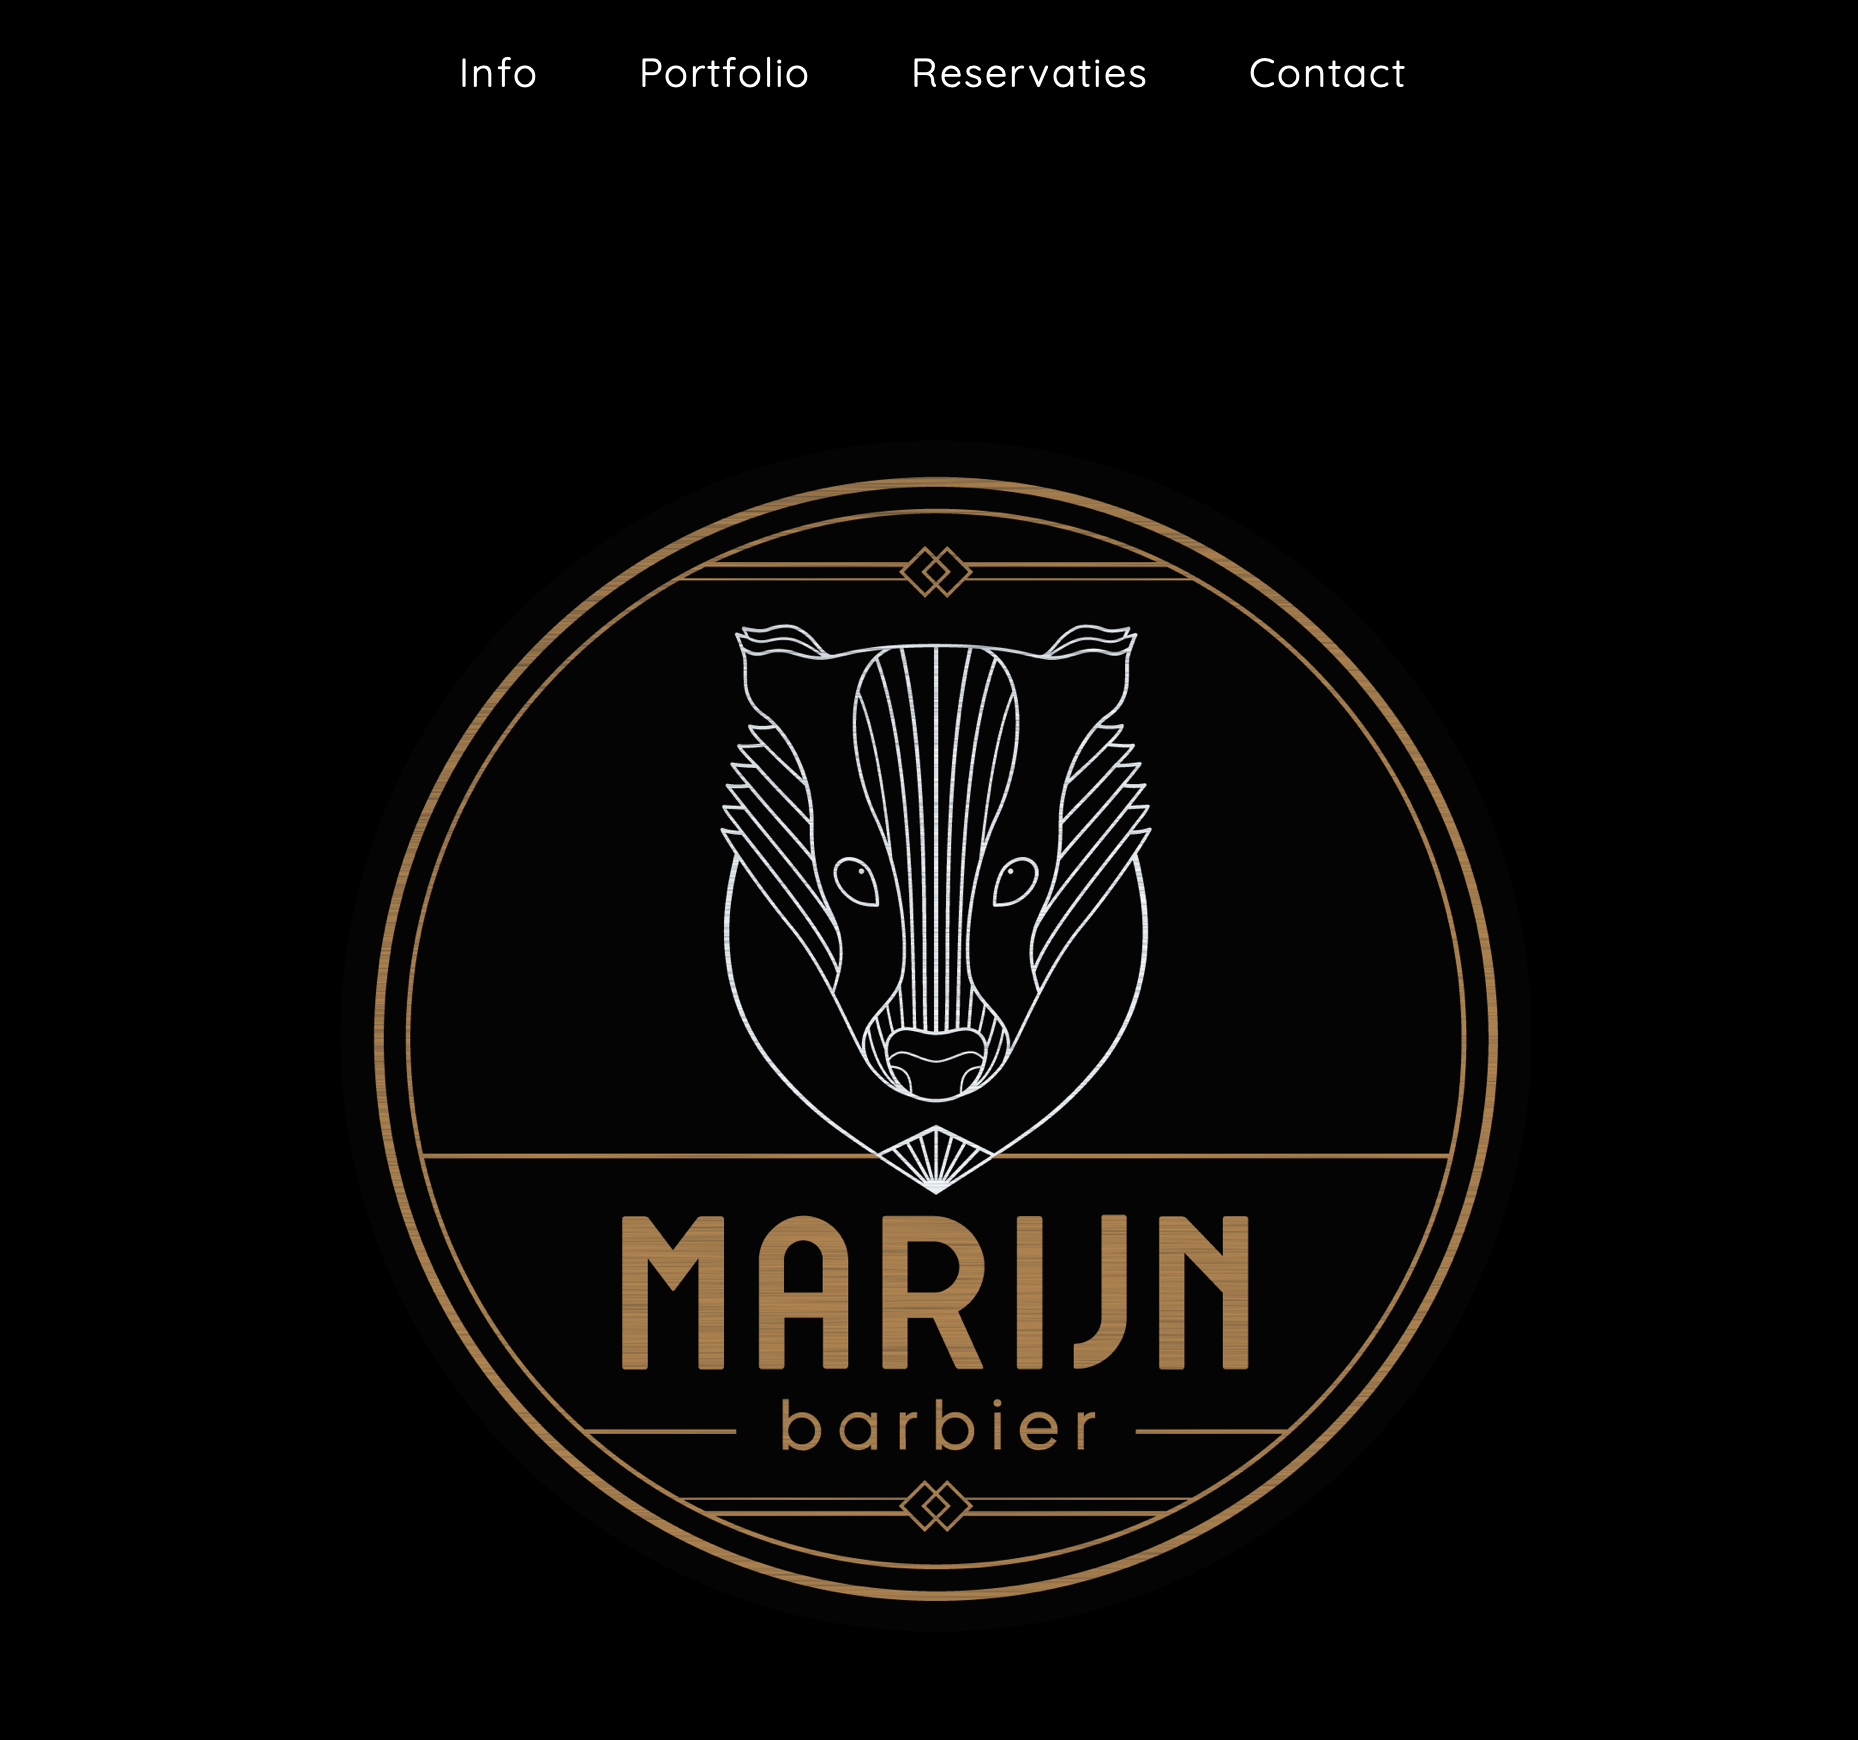 Marijn-barbier-website